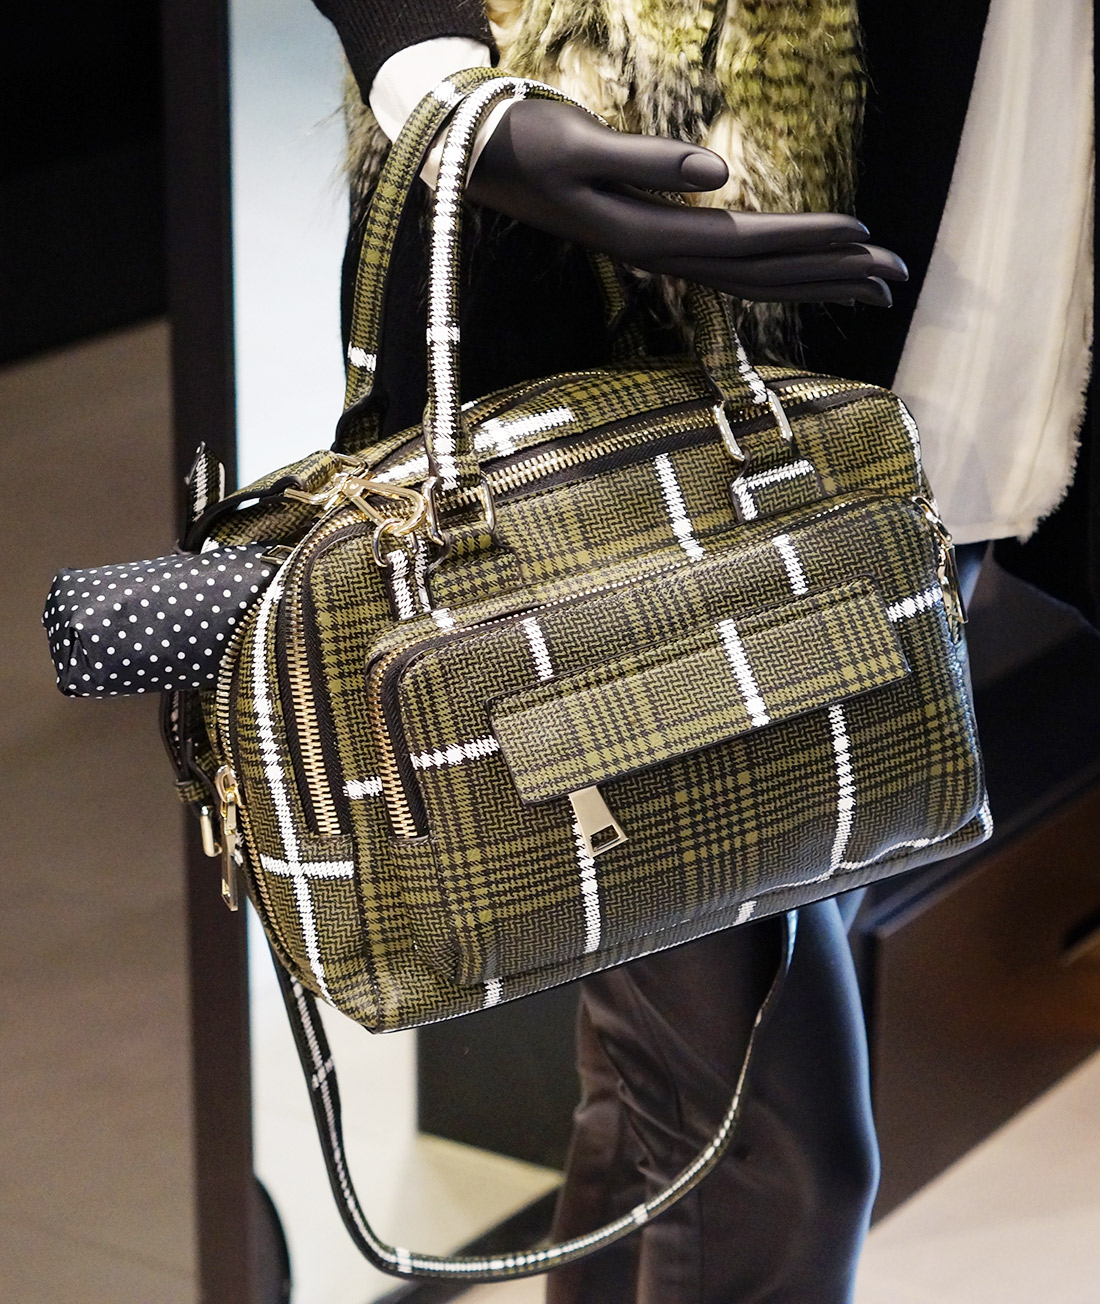 Bag-at-you---Fashion-blog---Essential-bag---Urban-outdoors-outfit---Unexpected-Fashion-Battle-in-Stadshart-Amstelveen